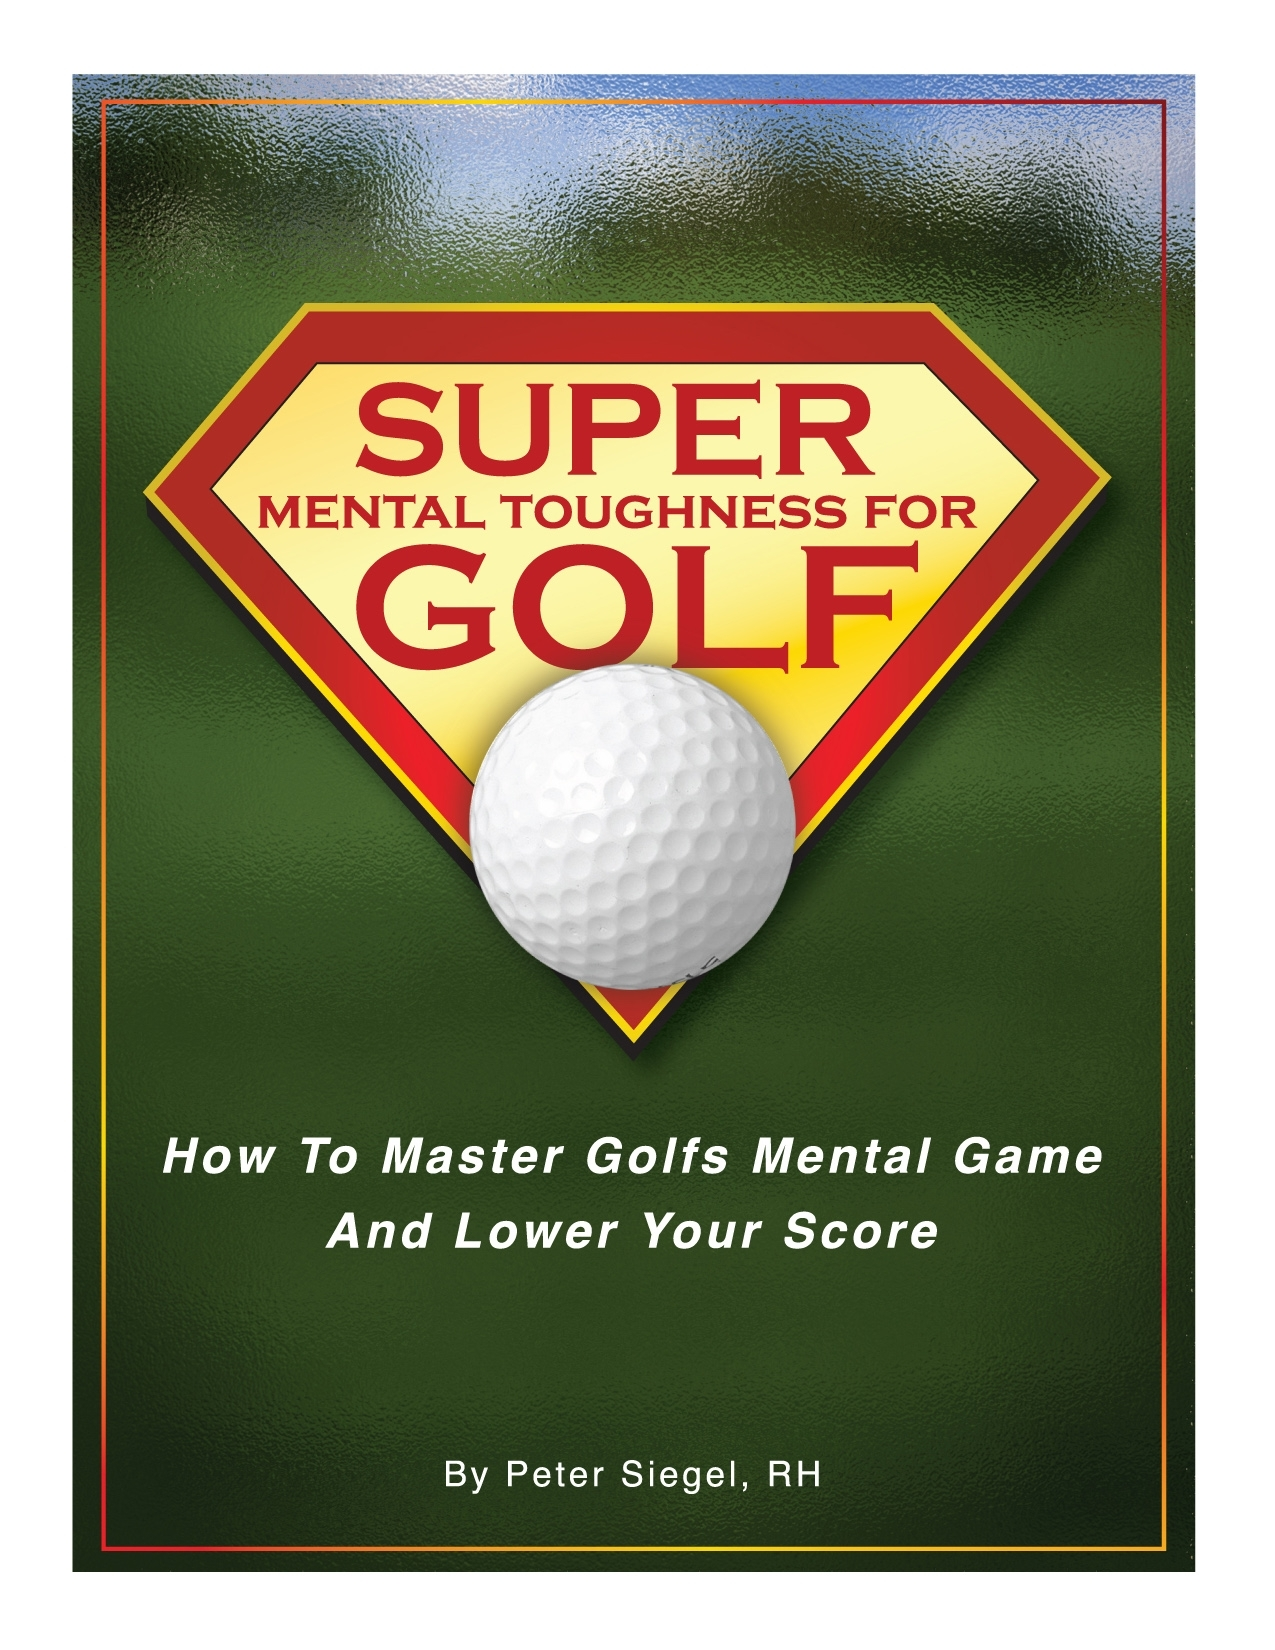 Super mental toughnes for golf sports hypnotherapy cd and book